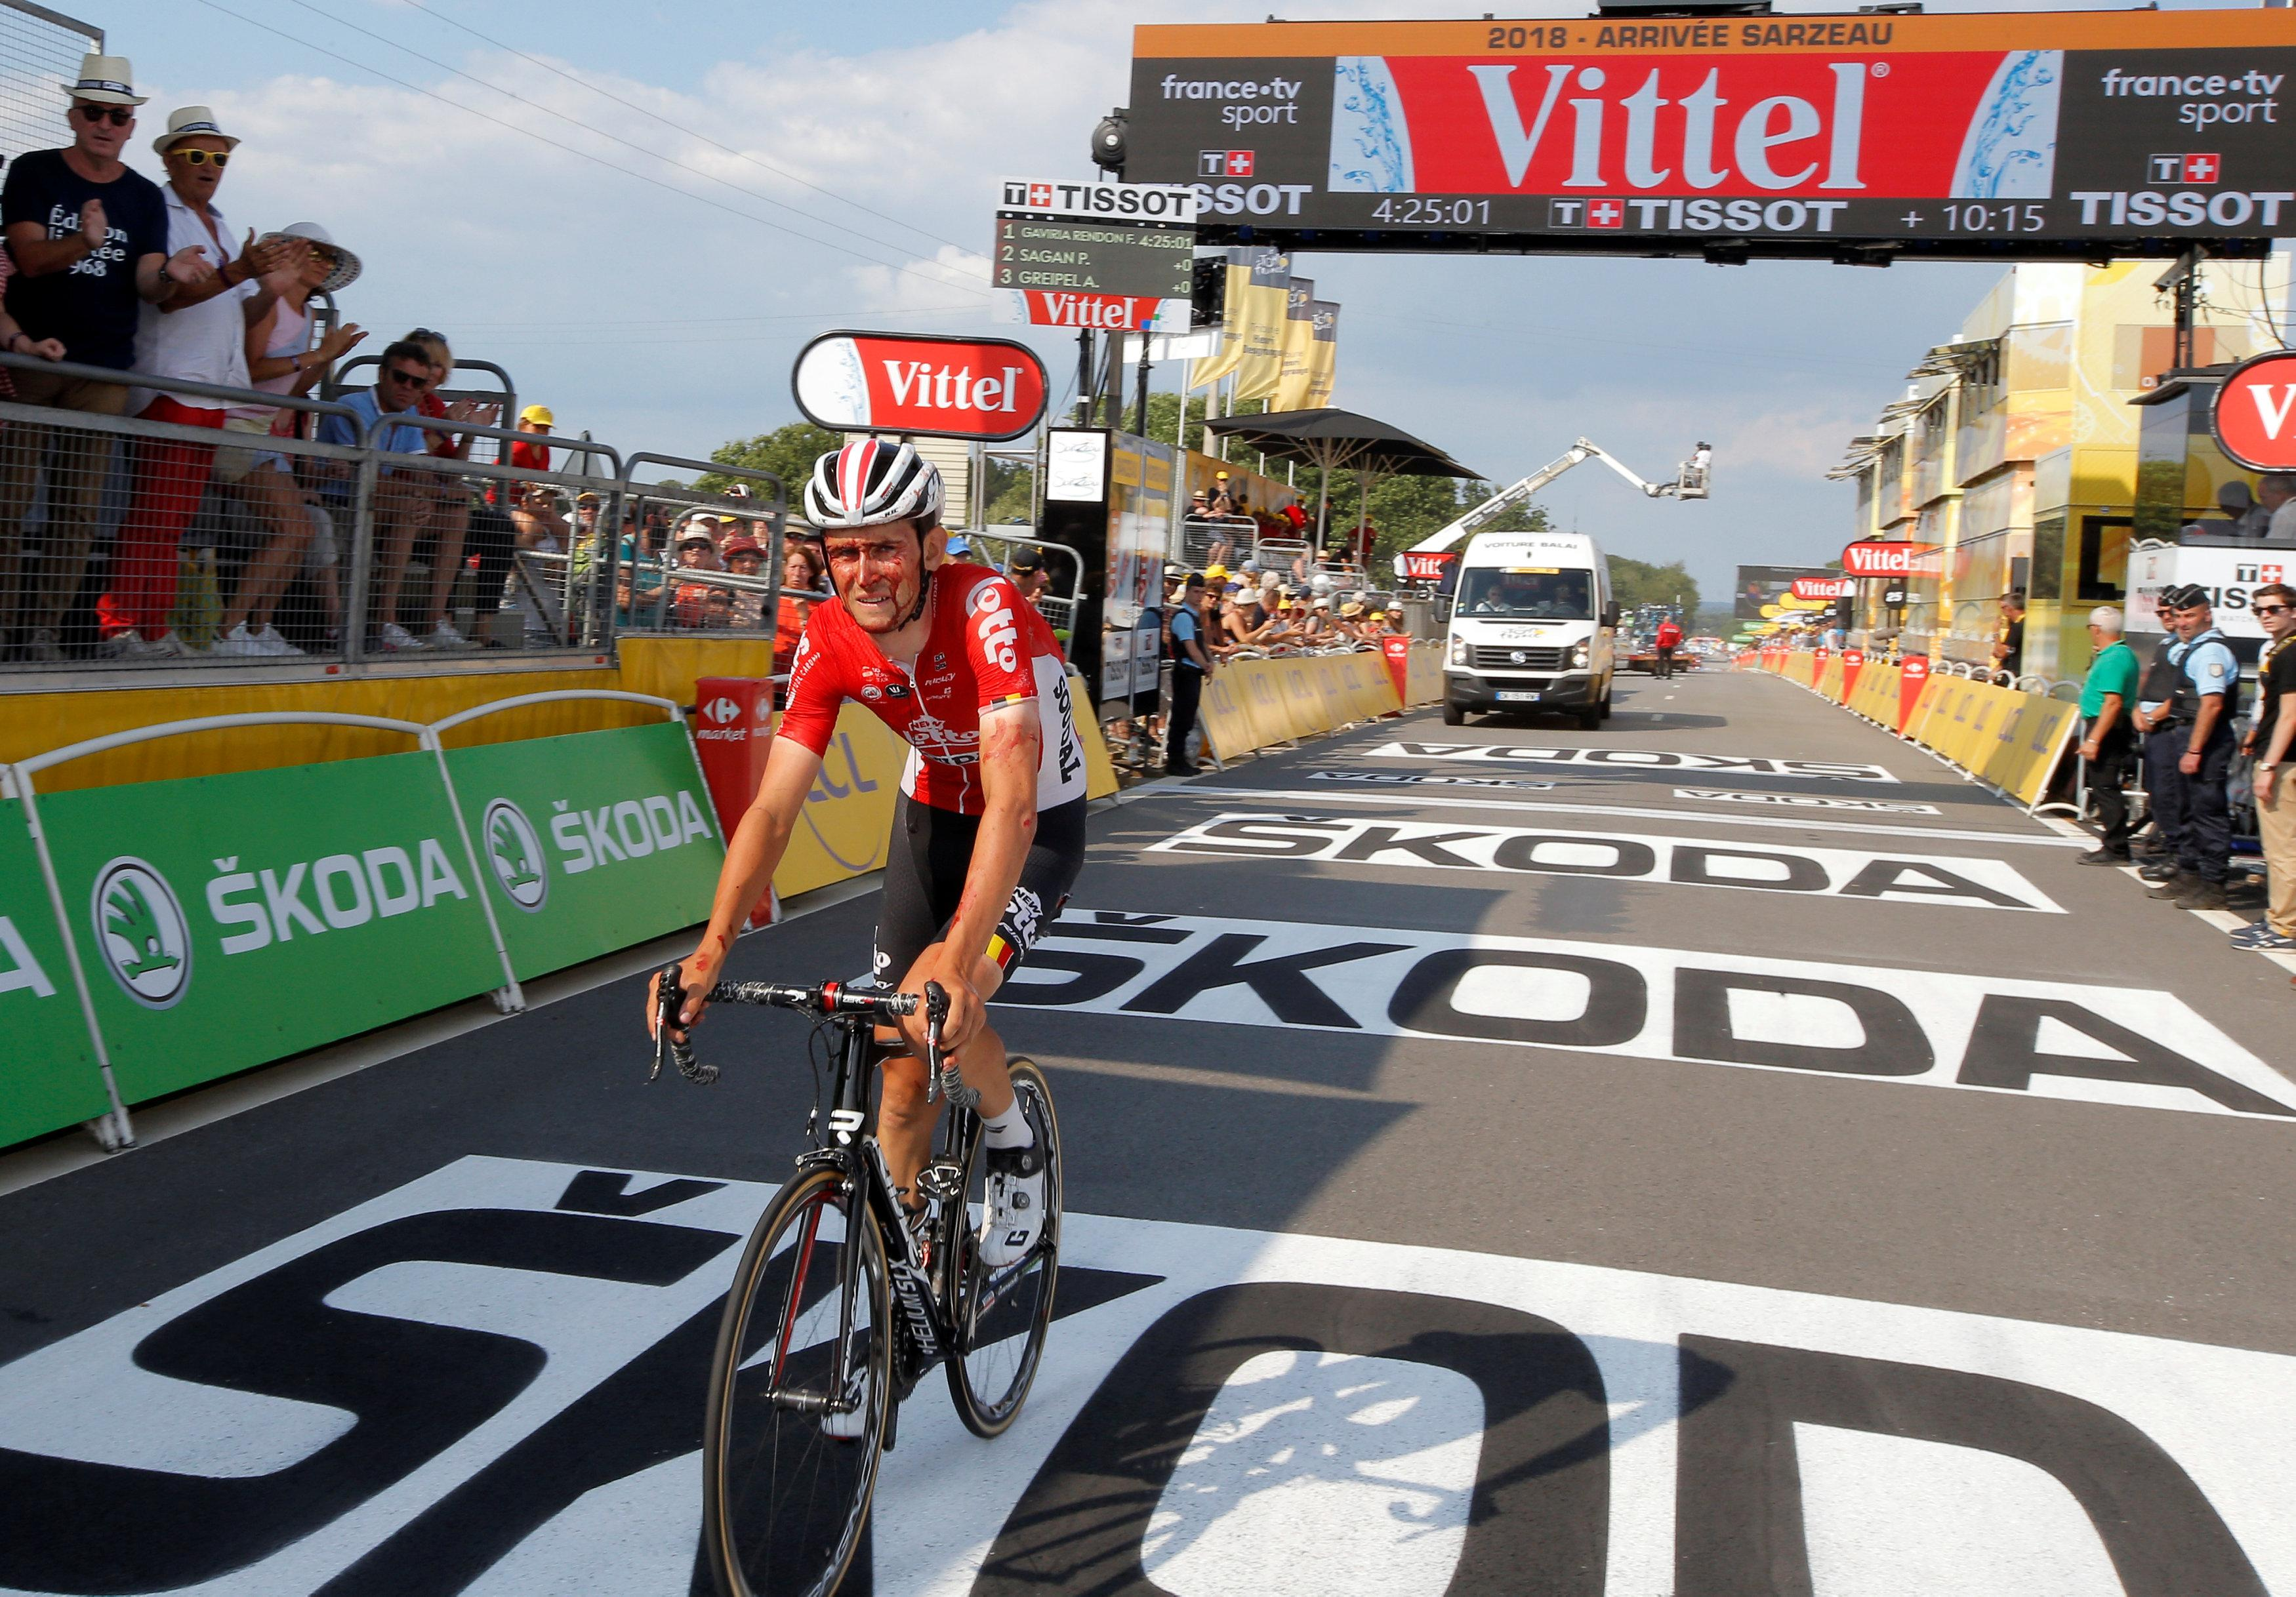 The Lotto Soudal rider looked worse for wear and finished 10min down on the stage winner Fernando Gaviria